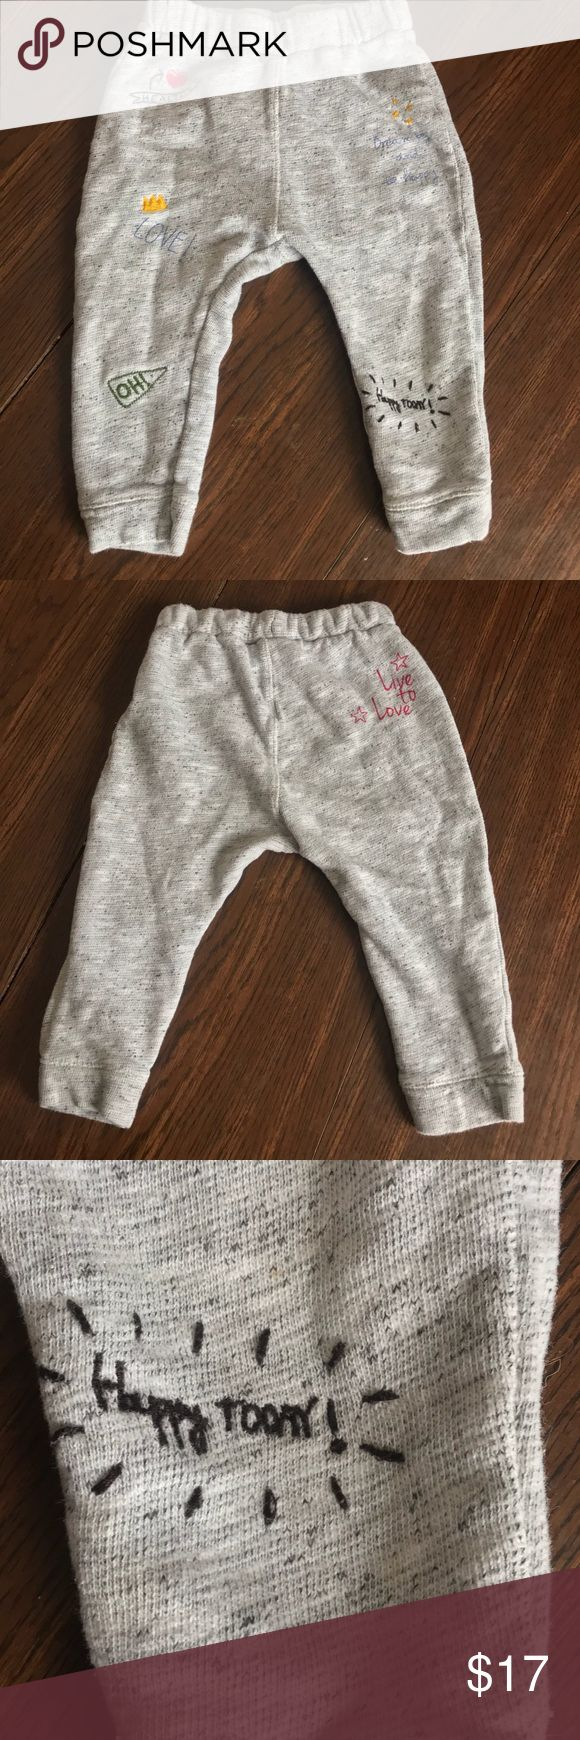 Zara Baby Girl Joggers Sweatpants w/embroidery Zara Baby Toddler joggers sweatpants in size 18-24 months. Unisex (they say Baby Girl but my son rocked em like nobodies business!!). EUC. No holes, stains, or defects. Minor wash wear. These pants are ADORABLE!! Have cute little sayings embroidered on them.   I have been the only owner of this item. I am not a consigner. Smoke free home. Please check out my other listings to bundle (and receive an automatic 10% discount!!), and save on…